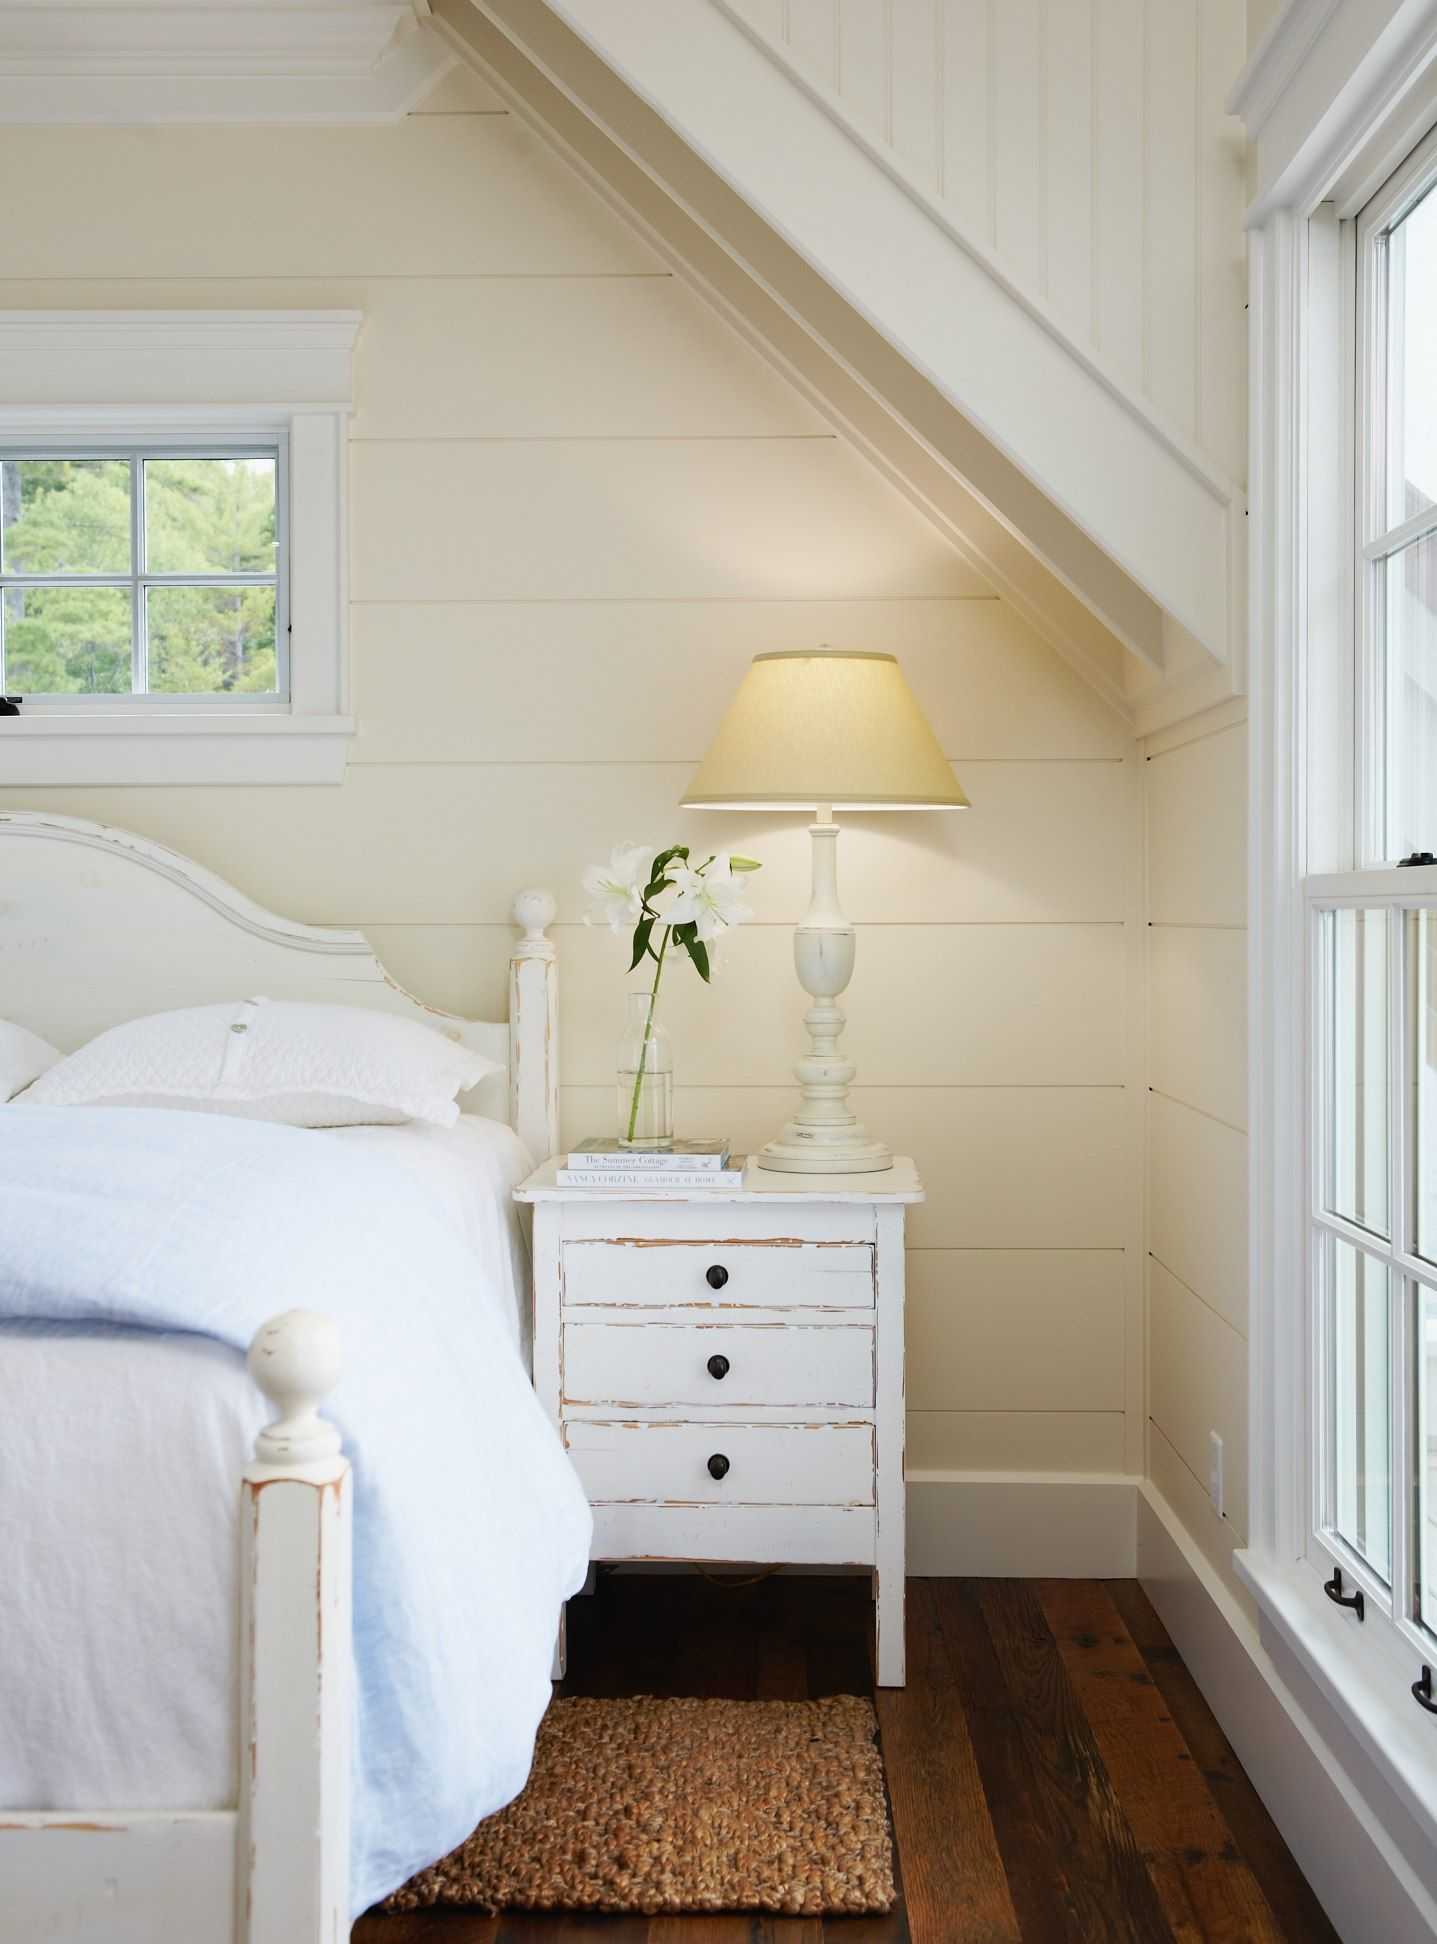 Cream Bedside Tables: White Bedside Table With Drawers. Jute Or Similar Rug